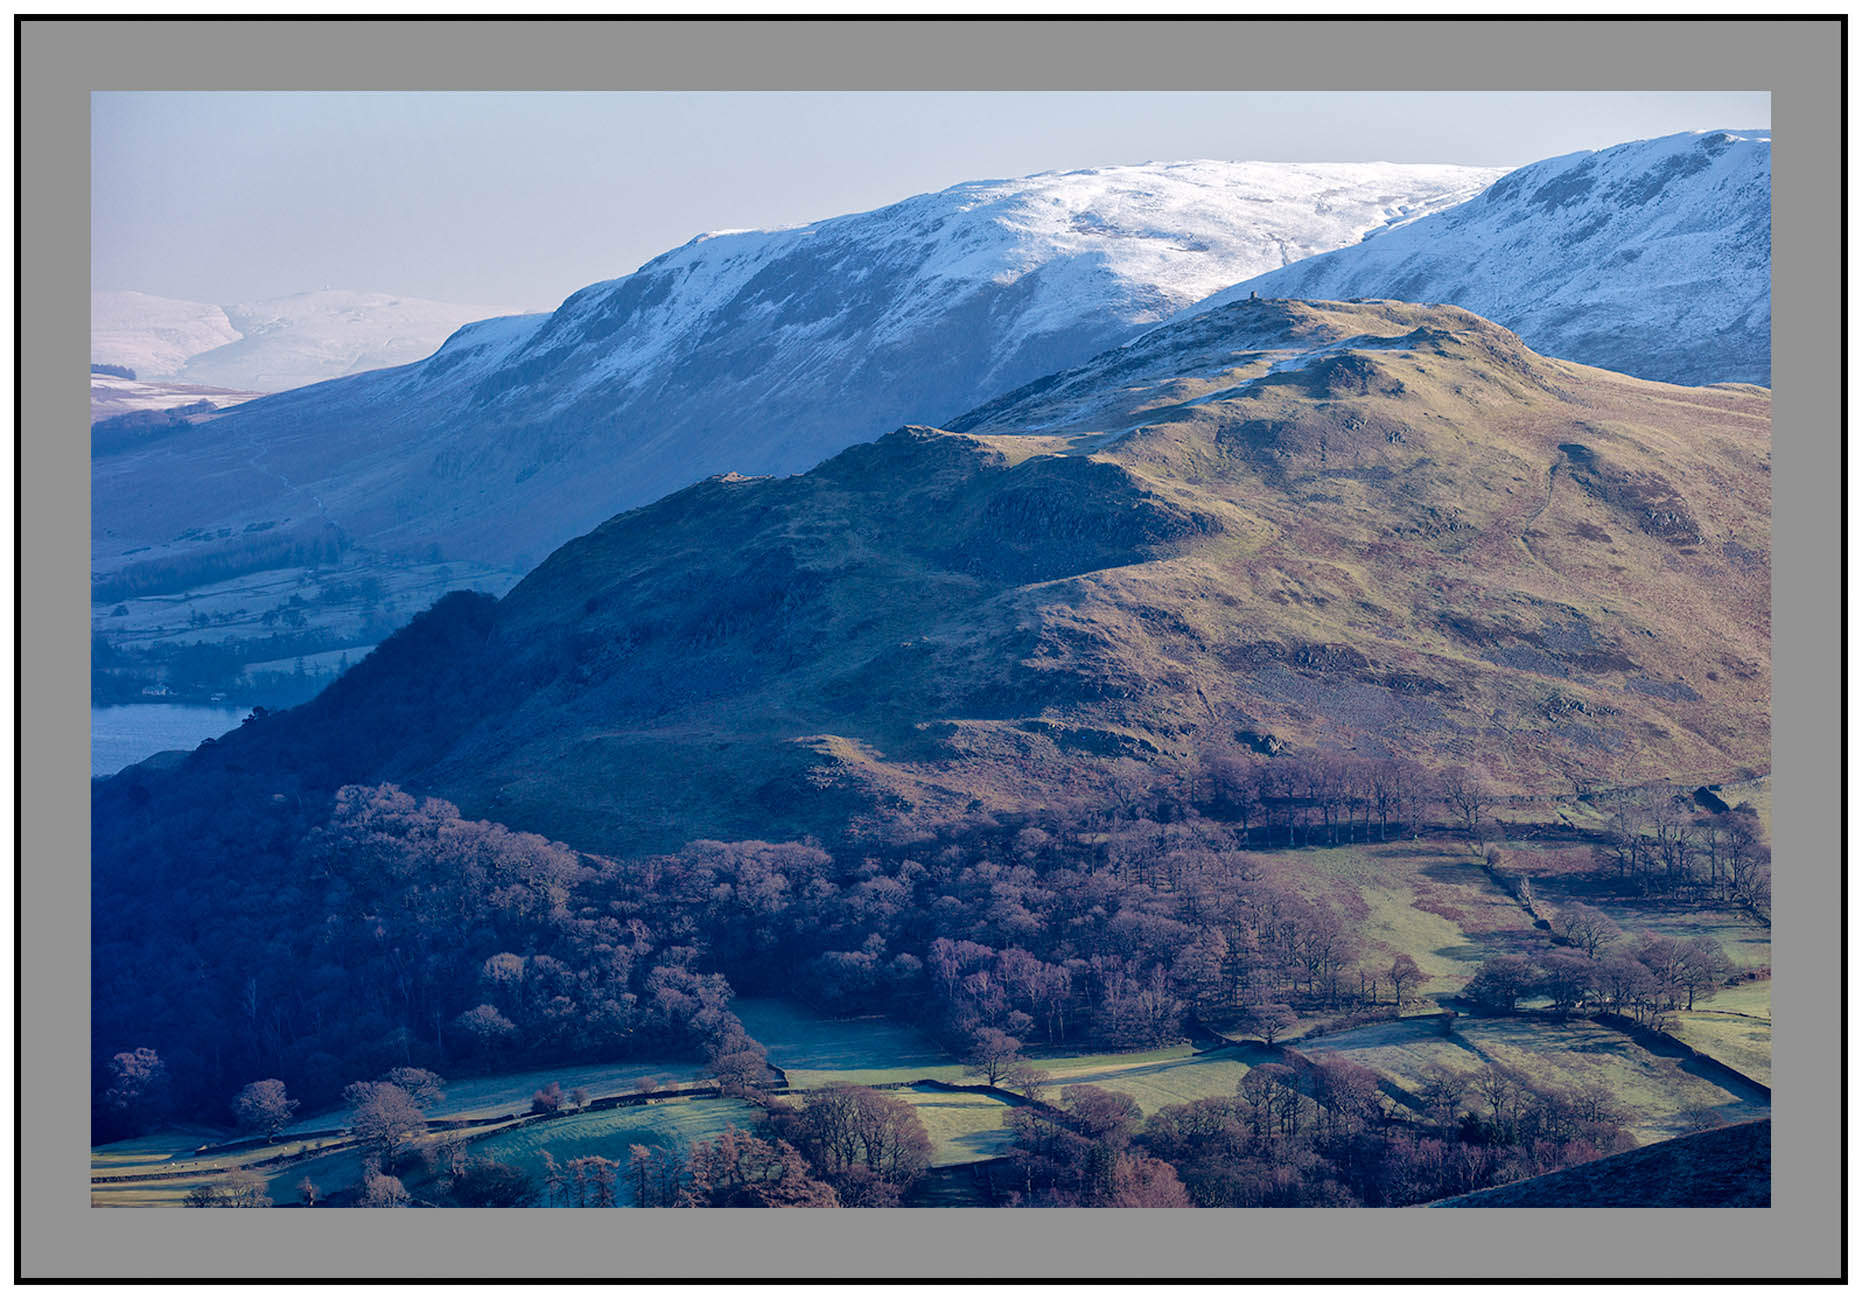 S2015453 Little Hallin Fell over-shadowed by snow capped Bonscale Pike and the distant Pennines